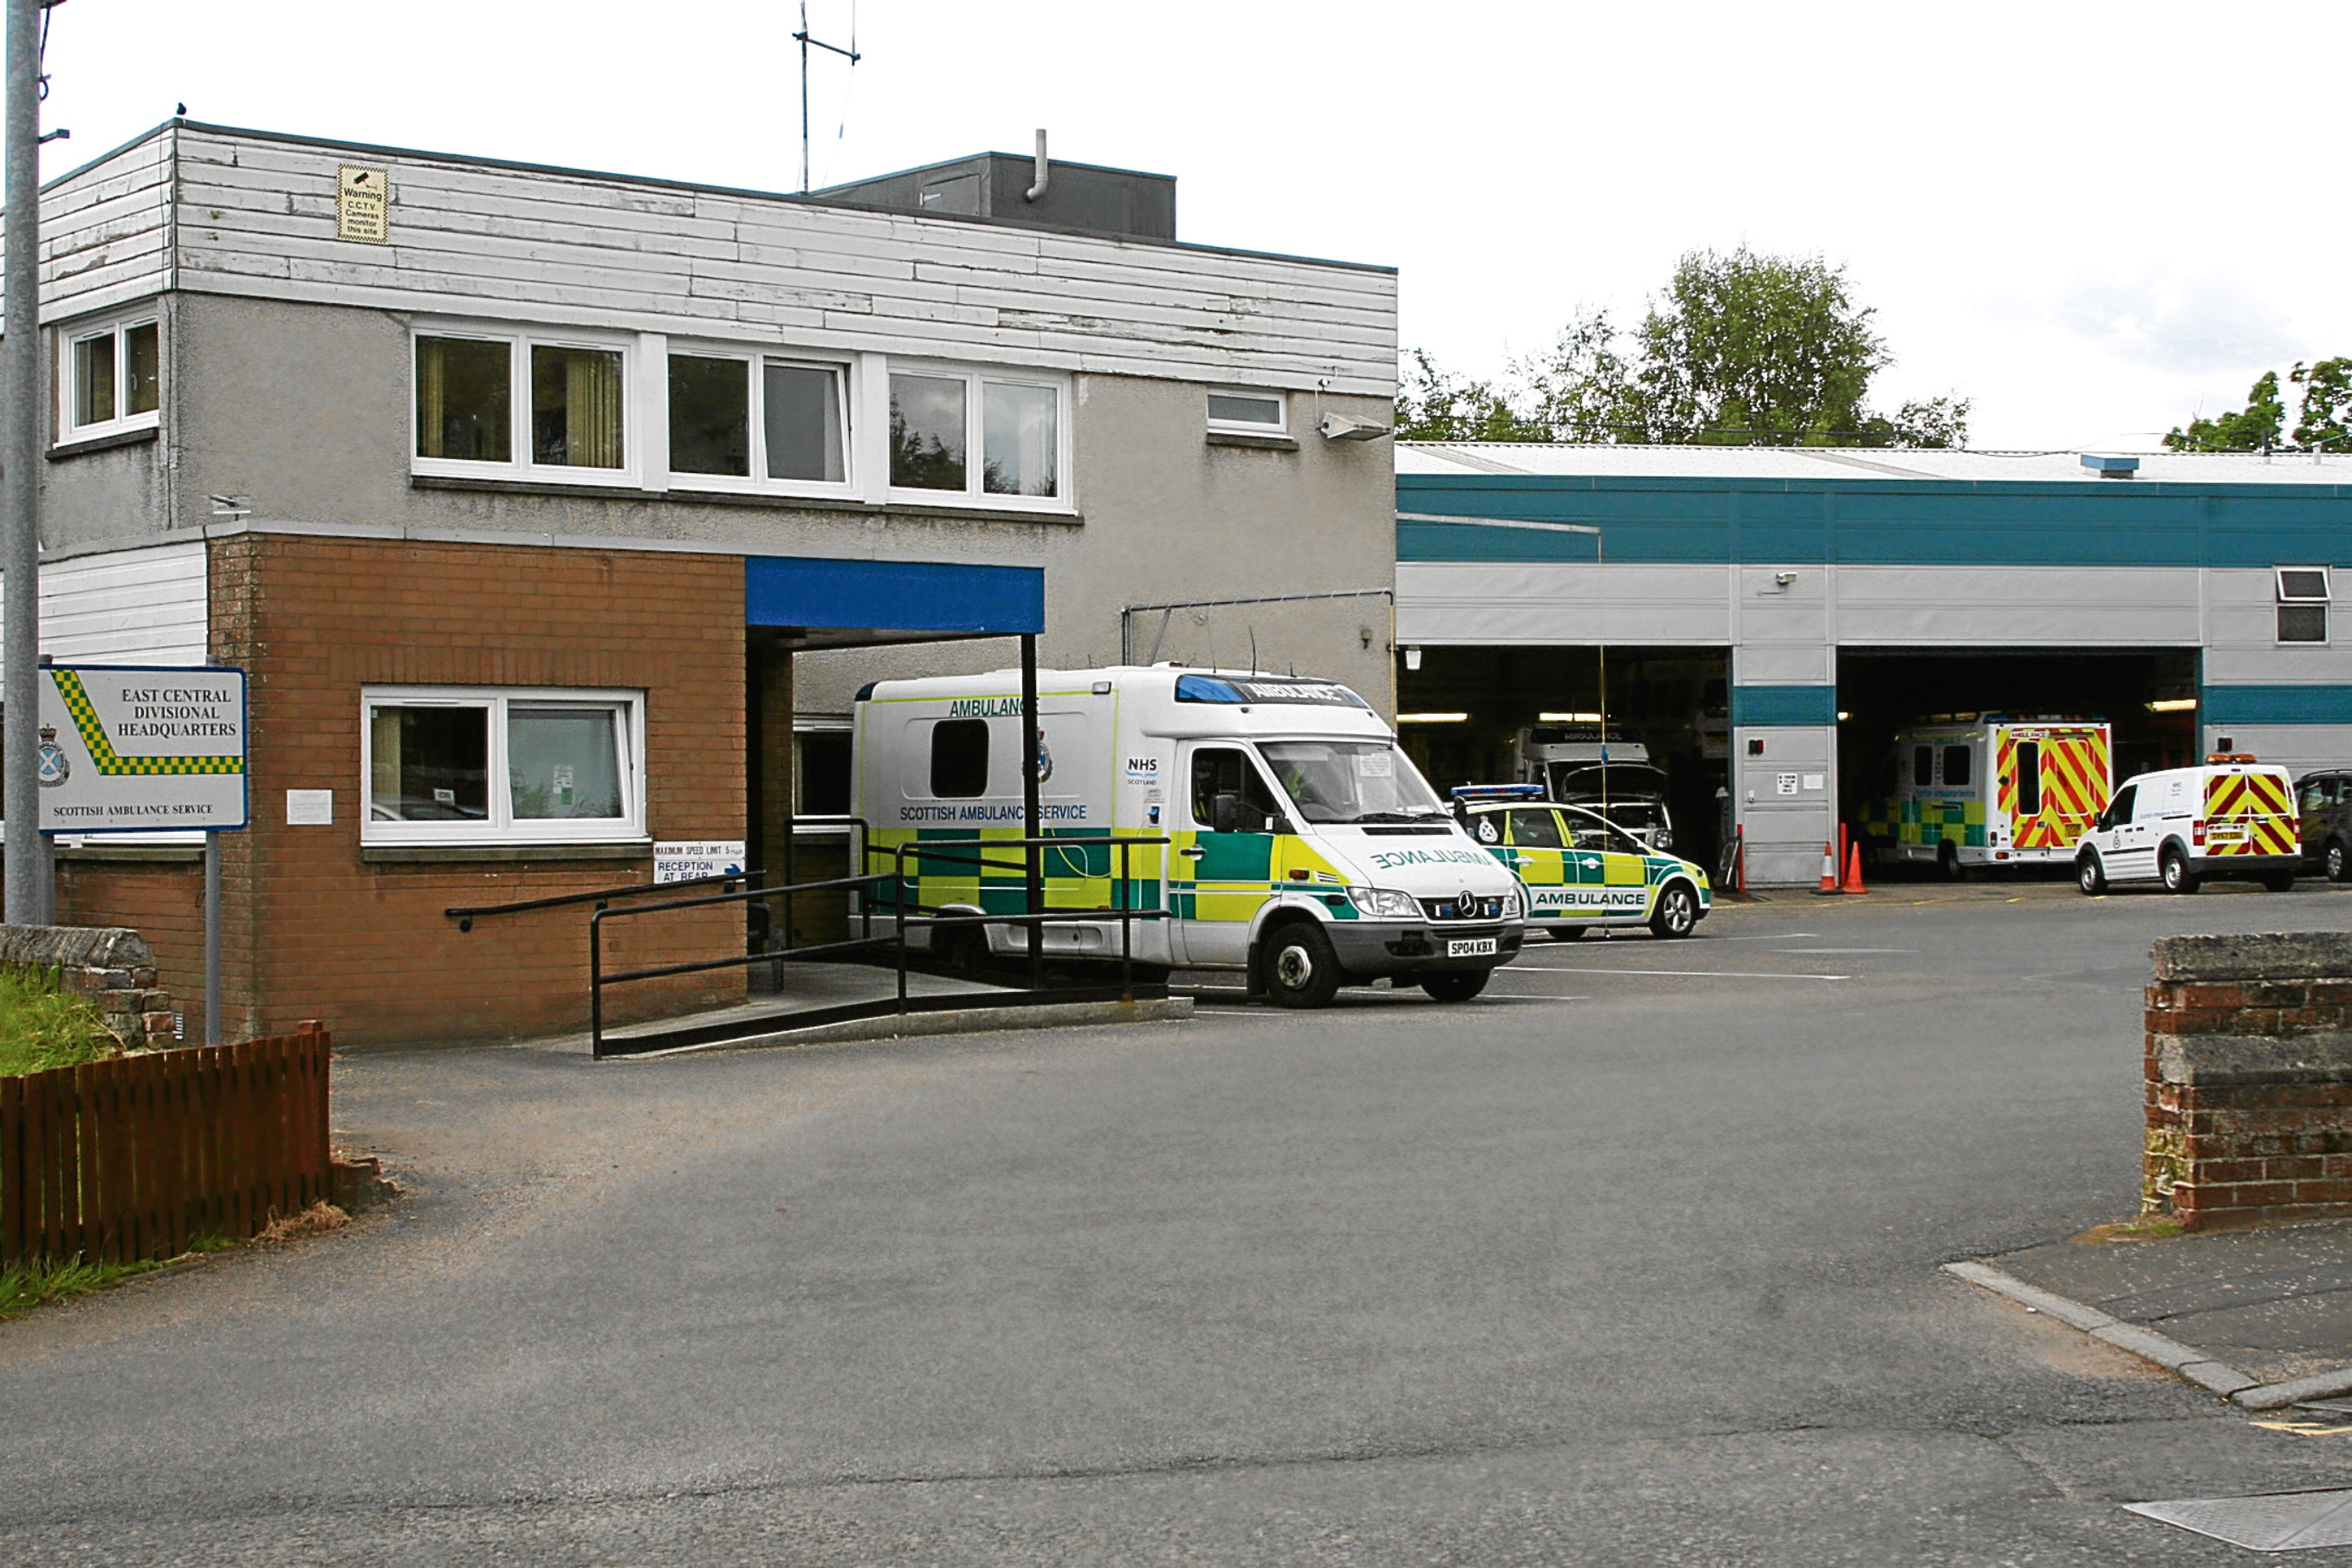 The Scottish Ambulance Service depot in West School Road, Dundee